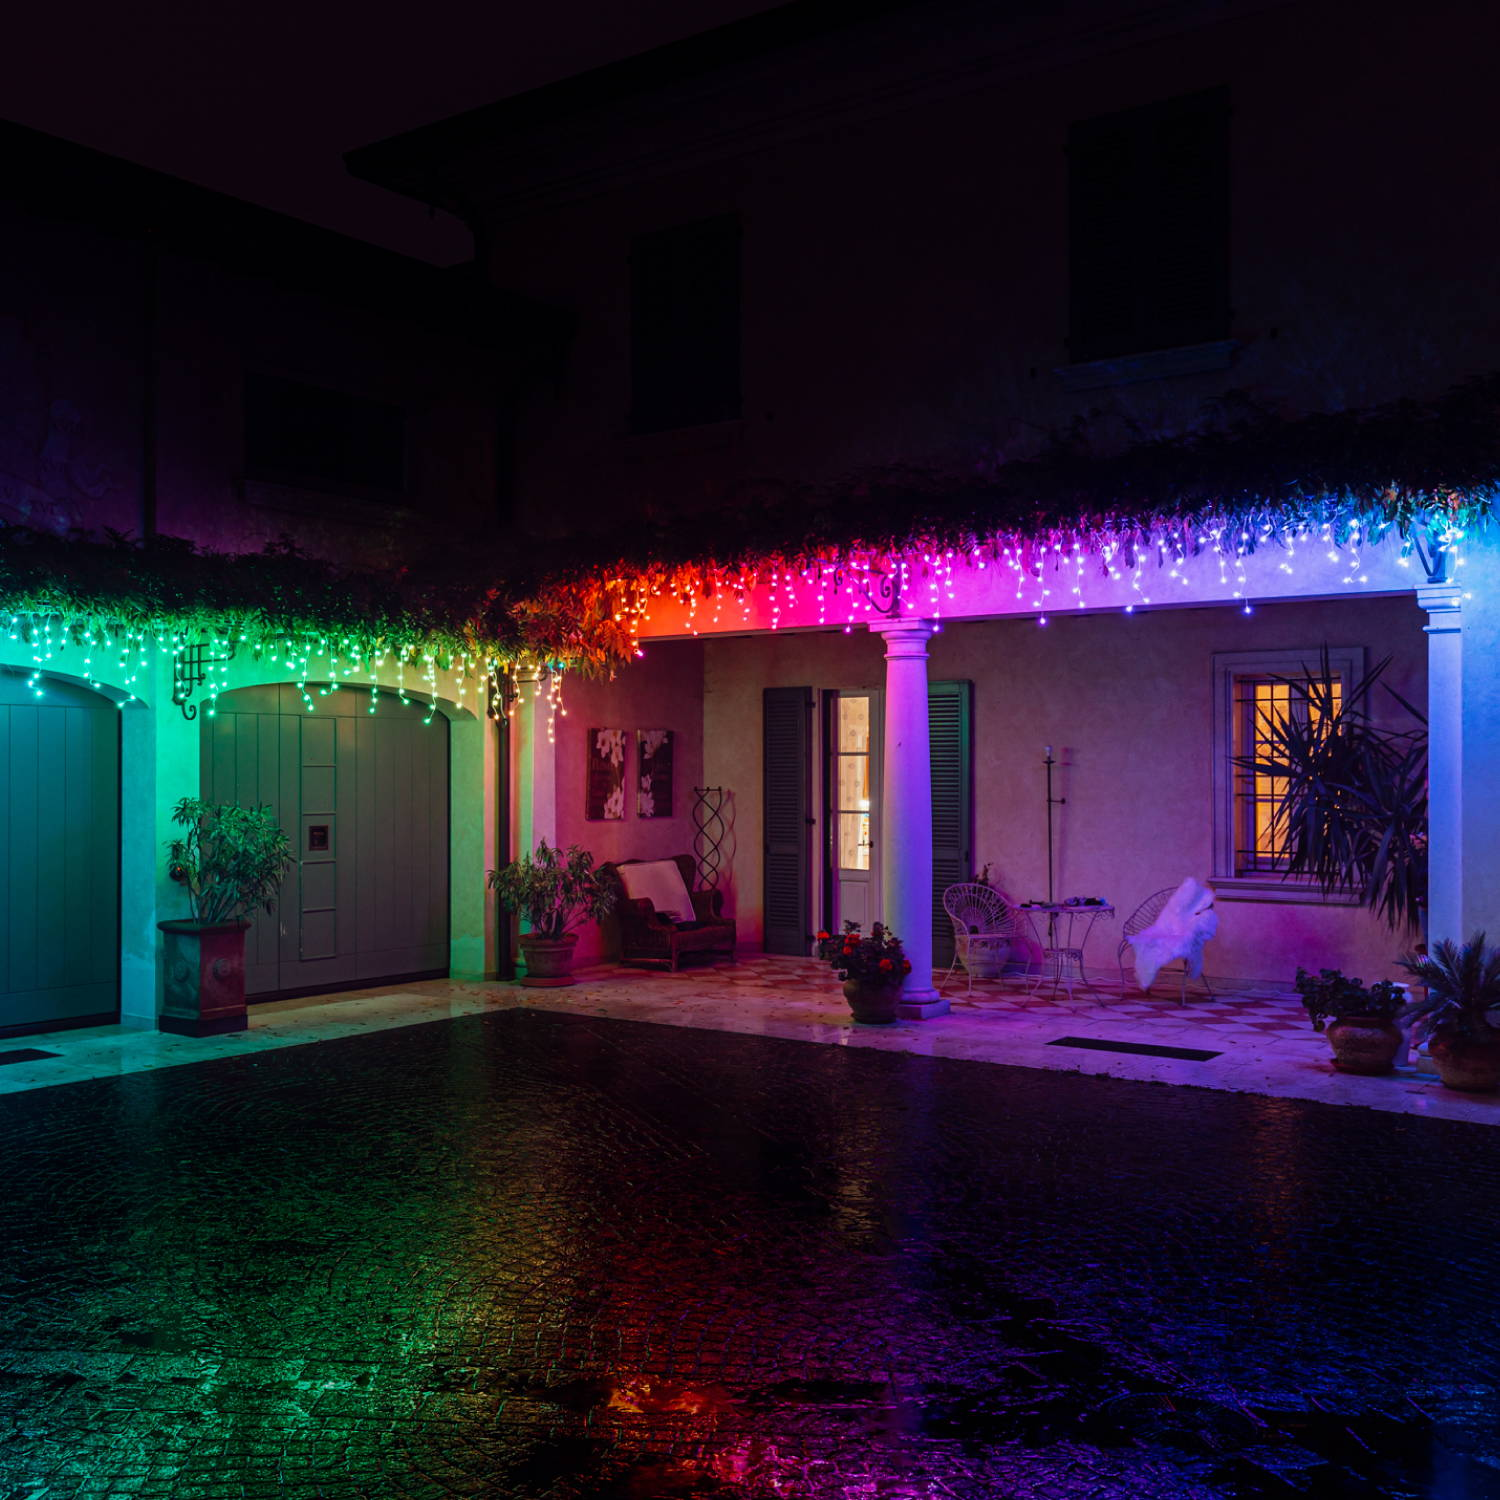 Multi coloured Twinkly icicle lights displayed along roof edge